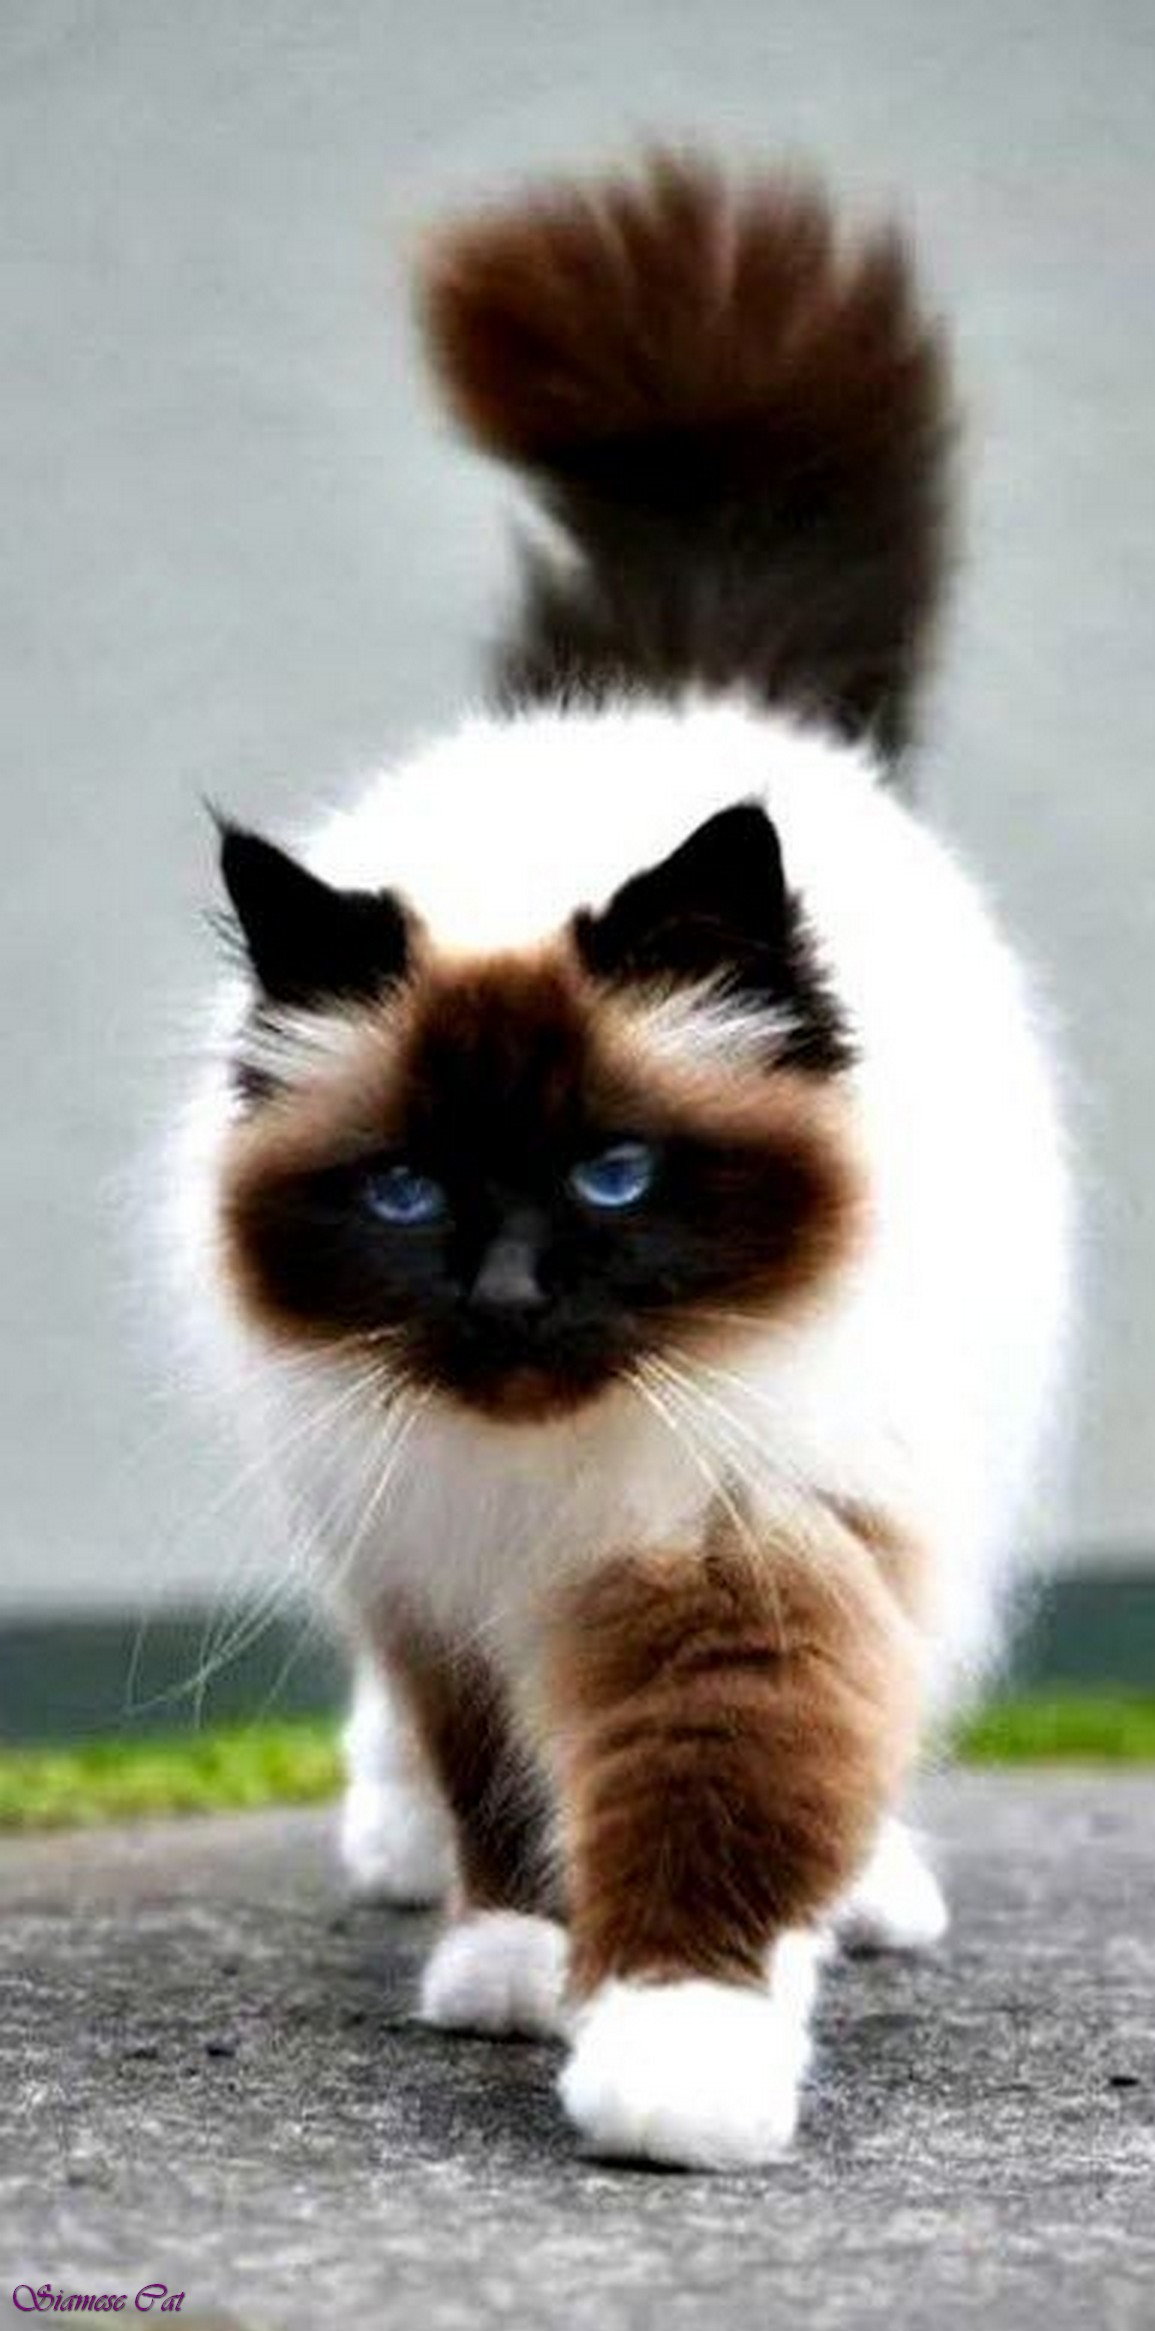 Fluffy Black Kittens With Blue Eyes Image - Fluffy-siamese...